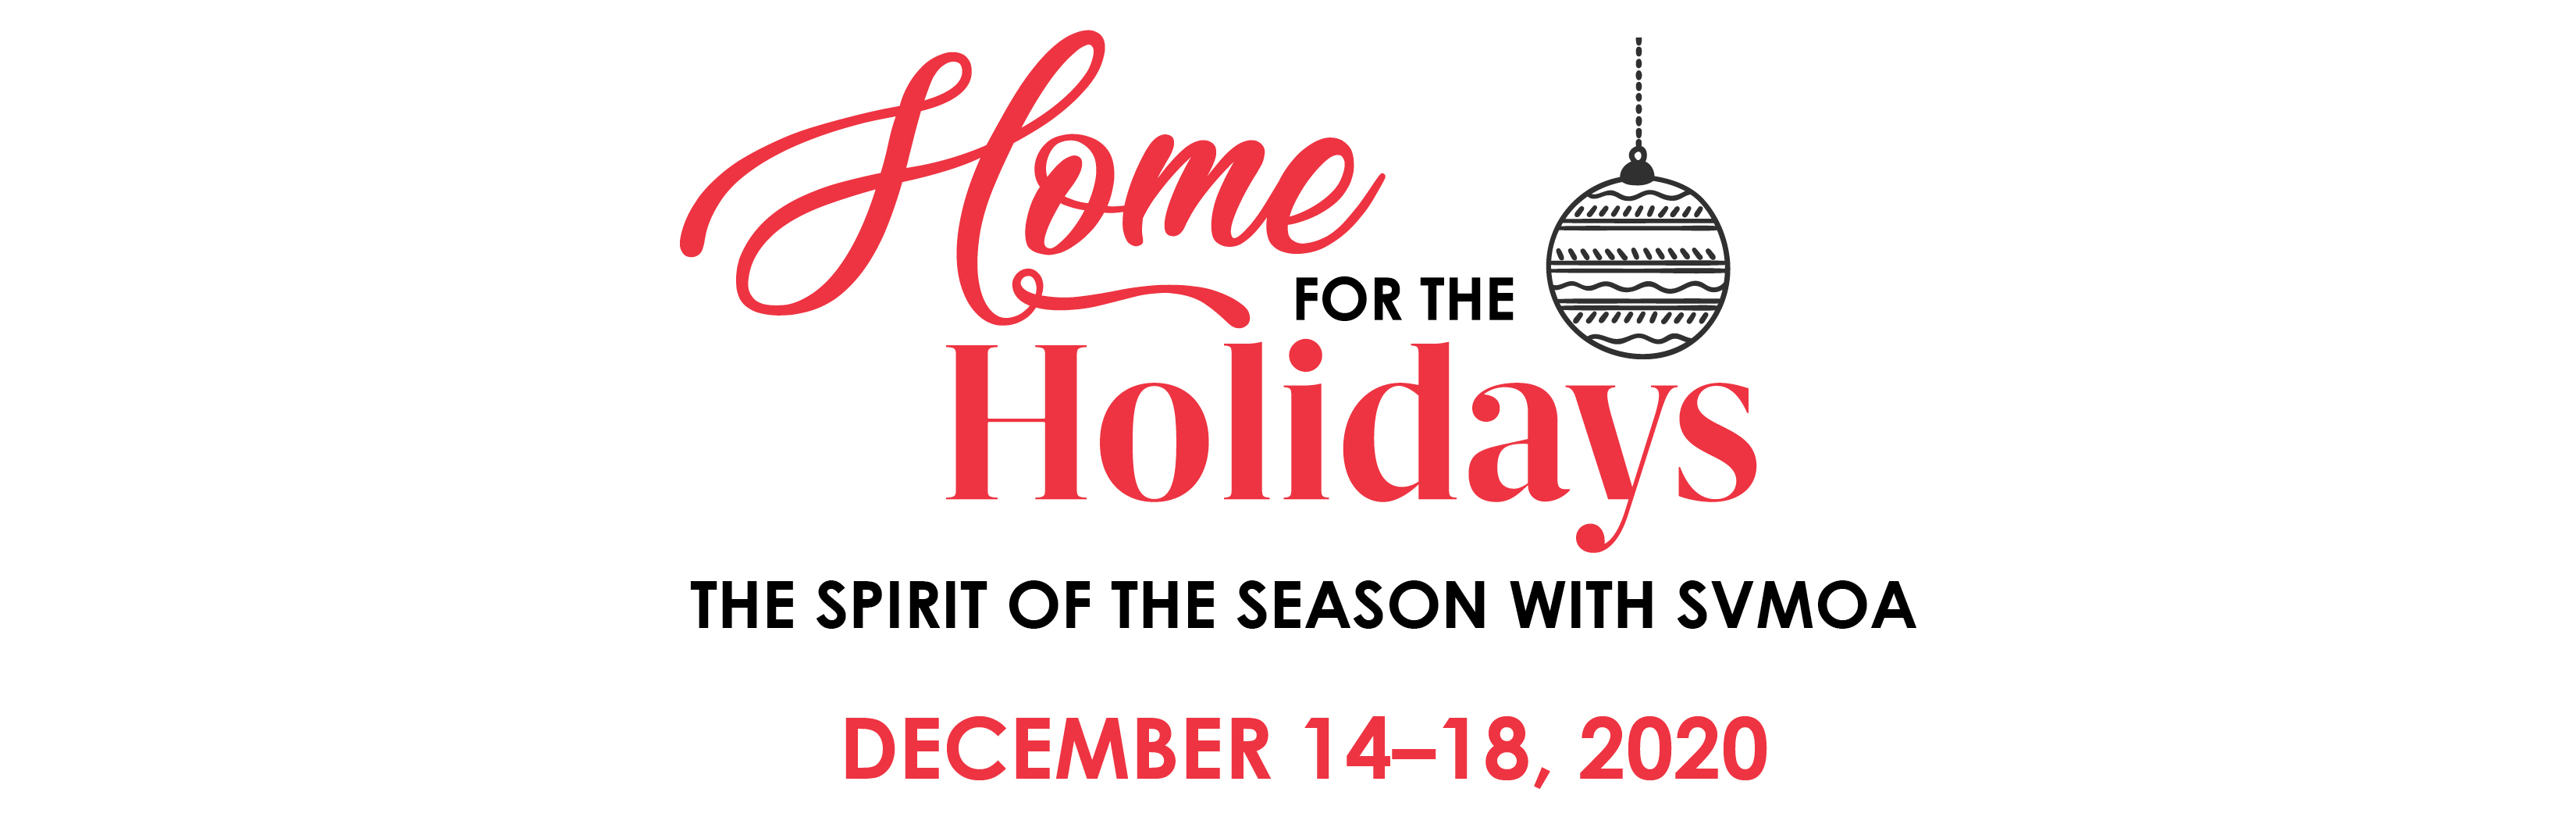 """""Sun Valley Museum of Art Home for the Holidays—The Spirti of the Season 2020"""""